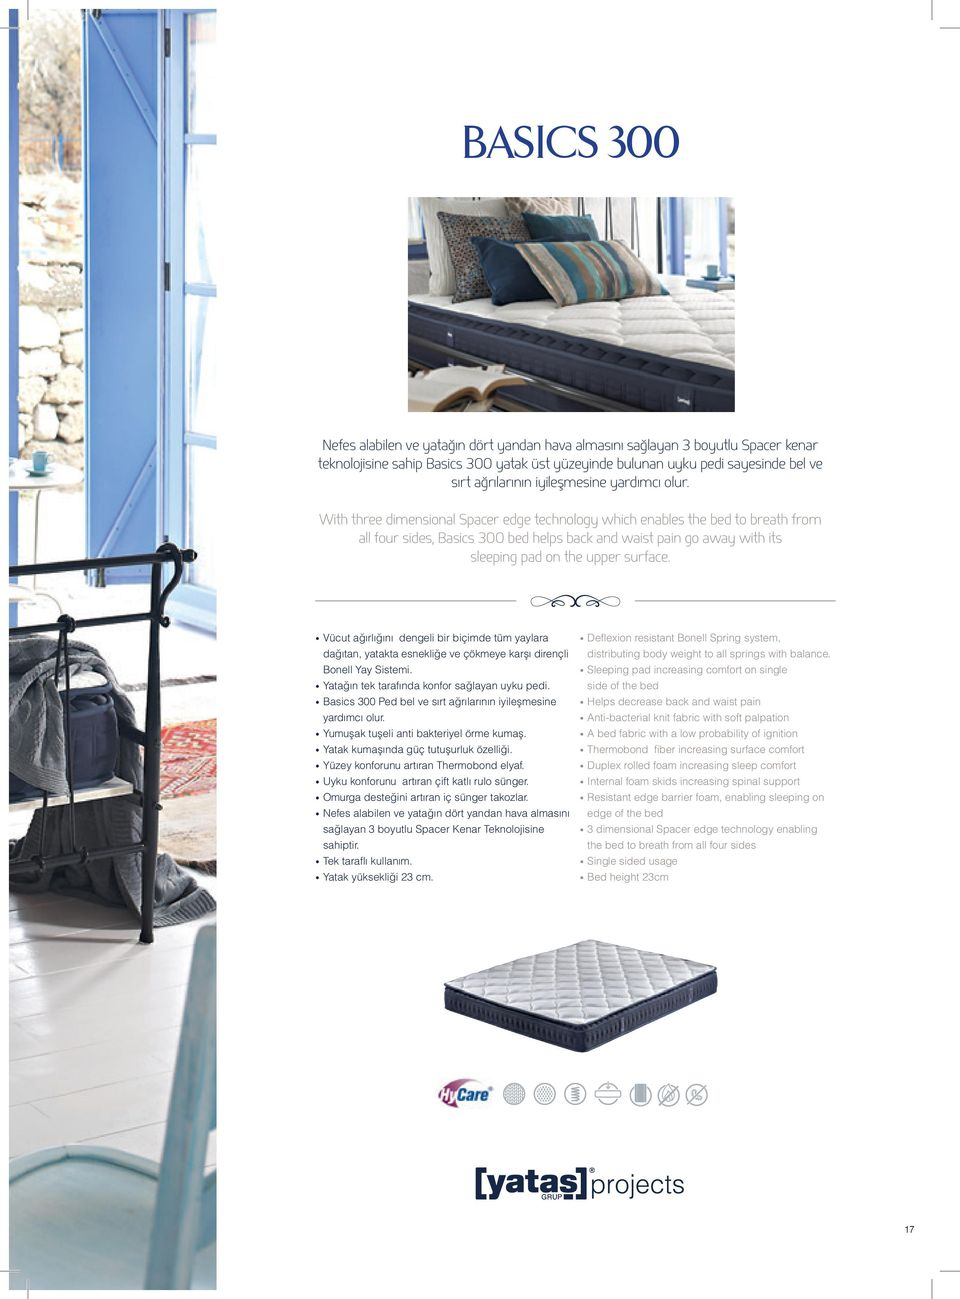 With three dimensional Spacer edge technology which enables the bed to breath from all four sides, Basics 300 bed helps back and waist pain go away with its sleeping pad on the upper surface.